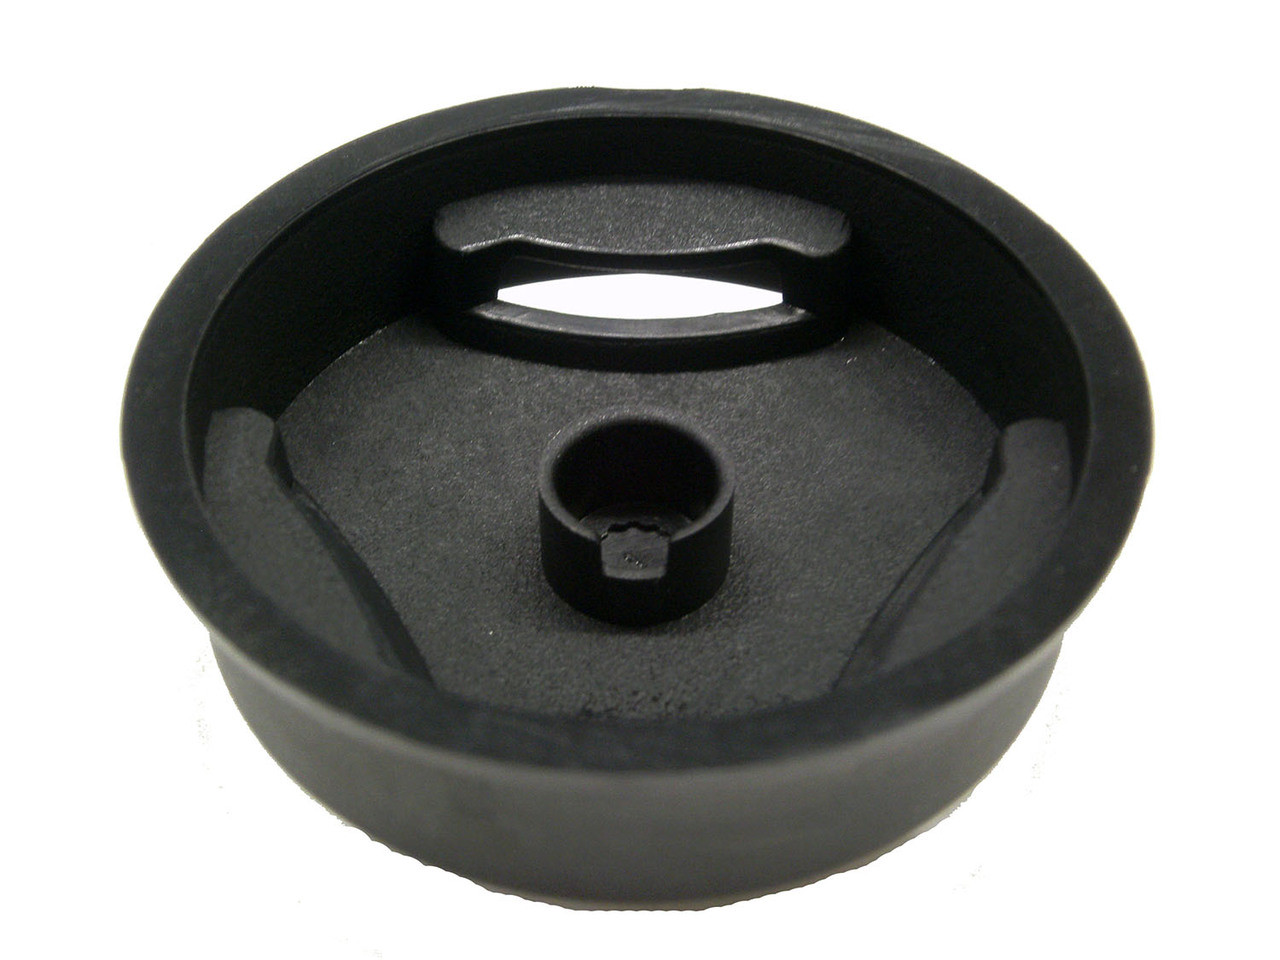 Oceanic GT3/Delta 3 Diaphragm Cover Second Stage